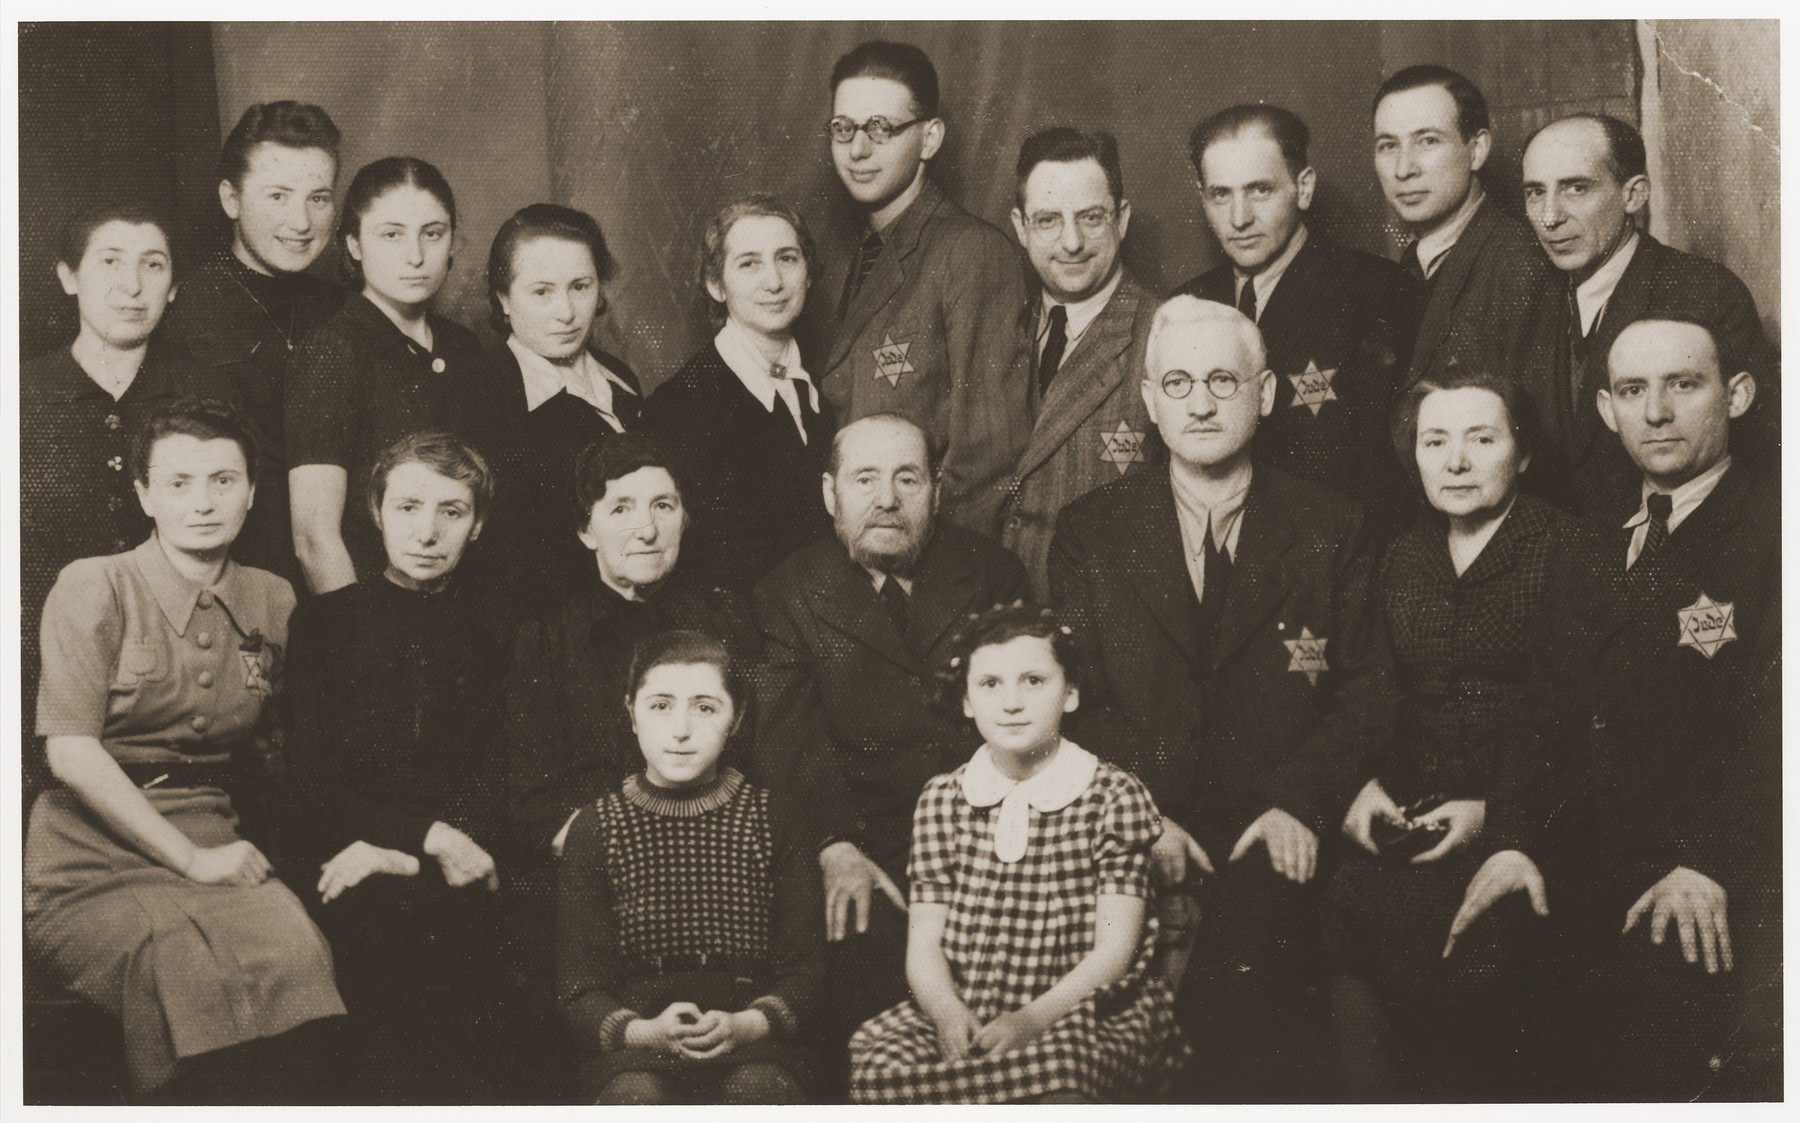 Group portrait of members of the Buchwajc and Laskier families in the Bedzin ghetto.    Among those pictured is Hala Buchwajc (top row, second from the left), Chana Laskier (top row, fifth from the left), Yehuda Laskier (top row, sixth from the left, Chana's son), Michal Laskier (top row, seventh from the left, Chana's husband), Ida Buchwajc (front row, second from the right, Hala's mother), and Pinkus Buchwajc (third from the right, Hala's father). The Laskiers survived the war in the Tittmoning international internment camp.  They were able to leave Bedzin on South American passports secured for them by their relative, Alfred Schwartzbaum, in Switzerland.